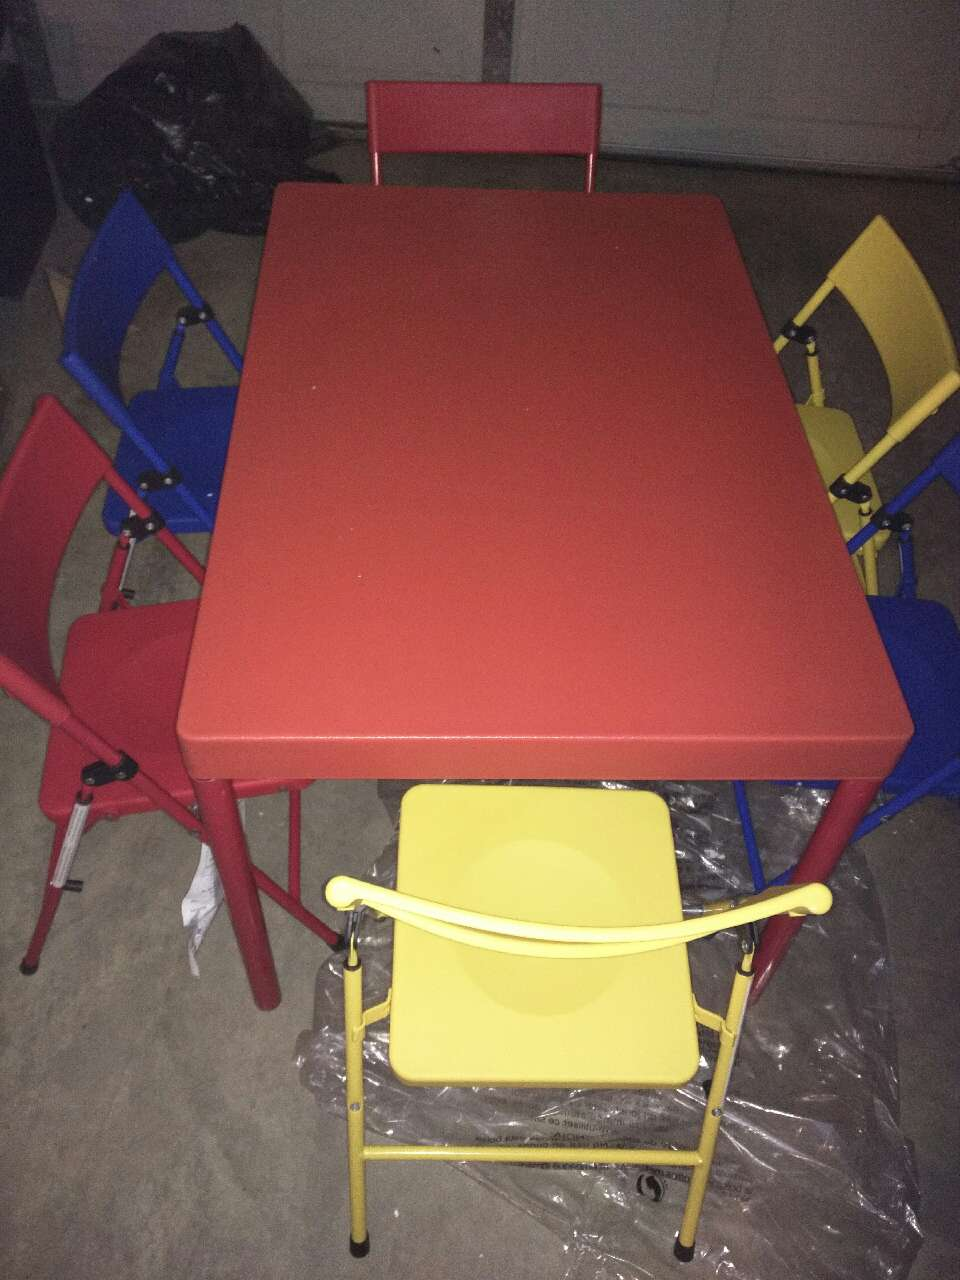 Letgo new cosco table with 6 chairs in valleyview oh for Table 6 ohio